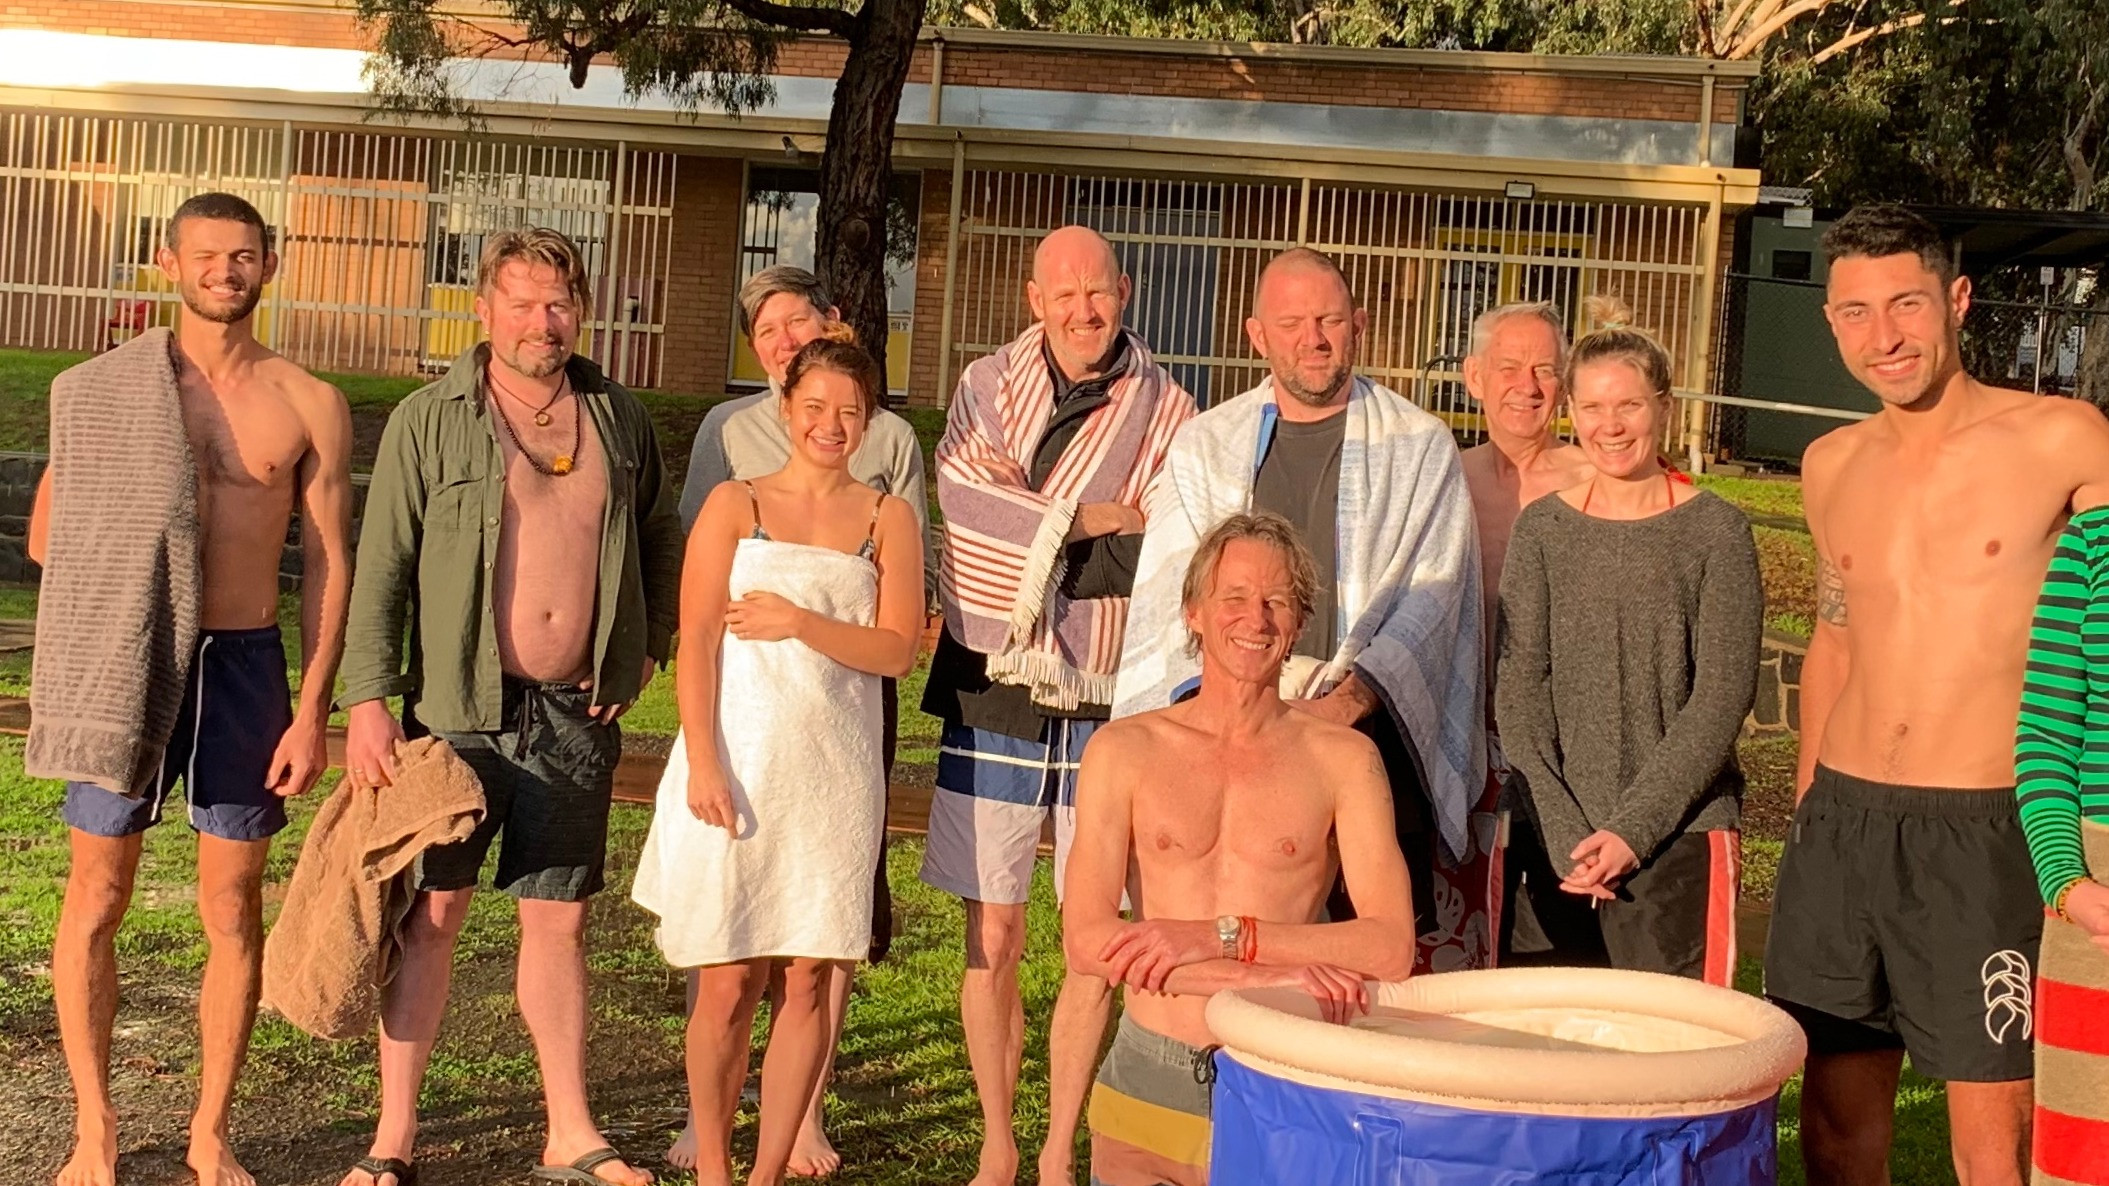 Image 7 of 13 - Experience the Wim Hof Method to get an impression of  at